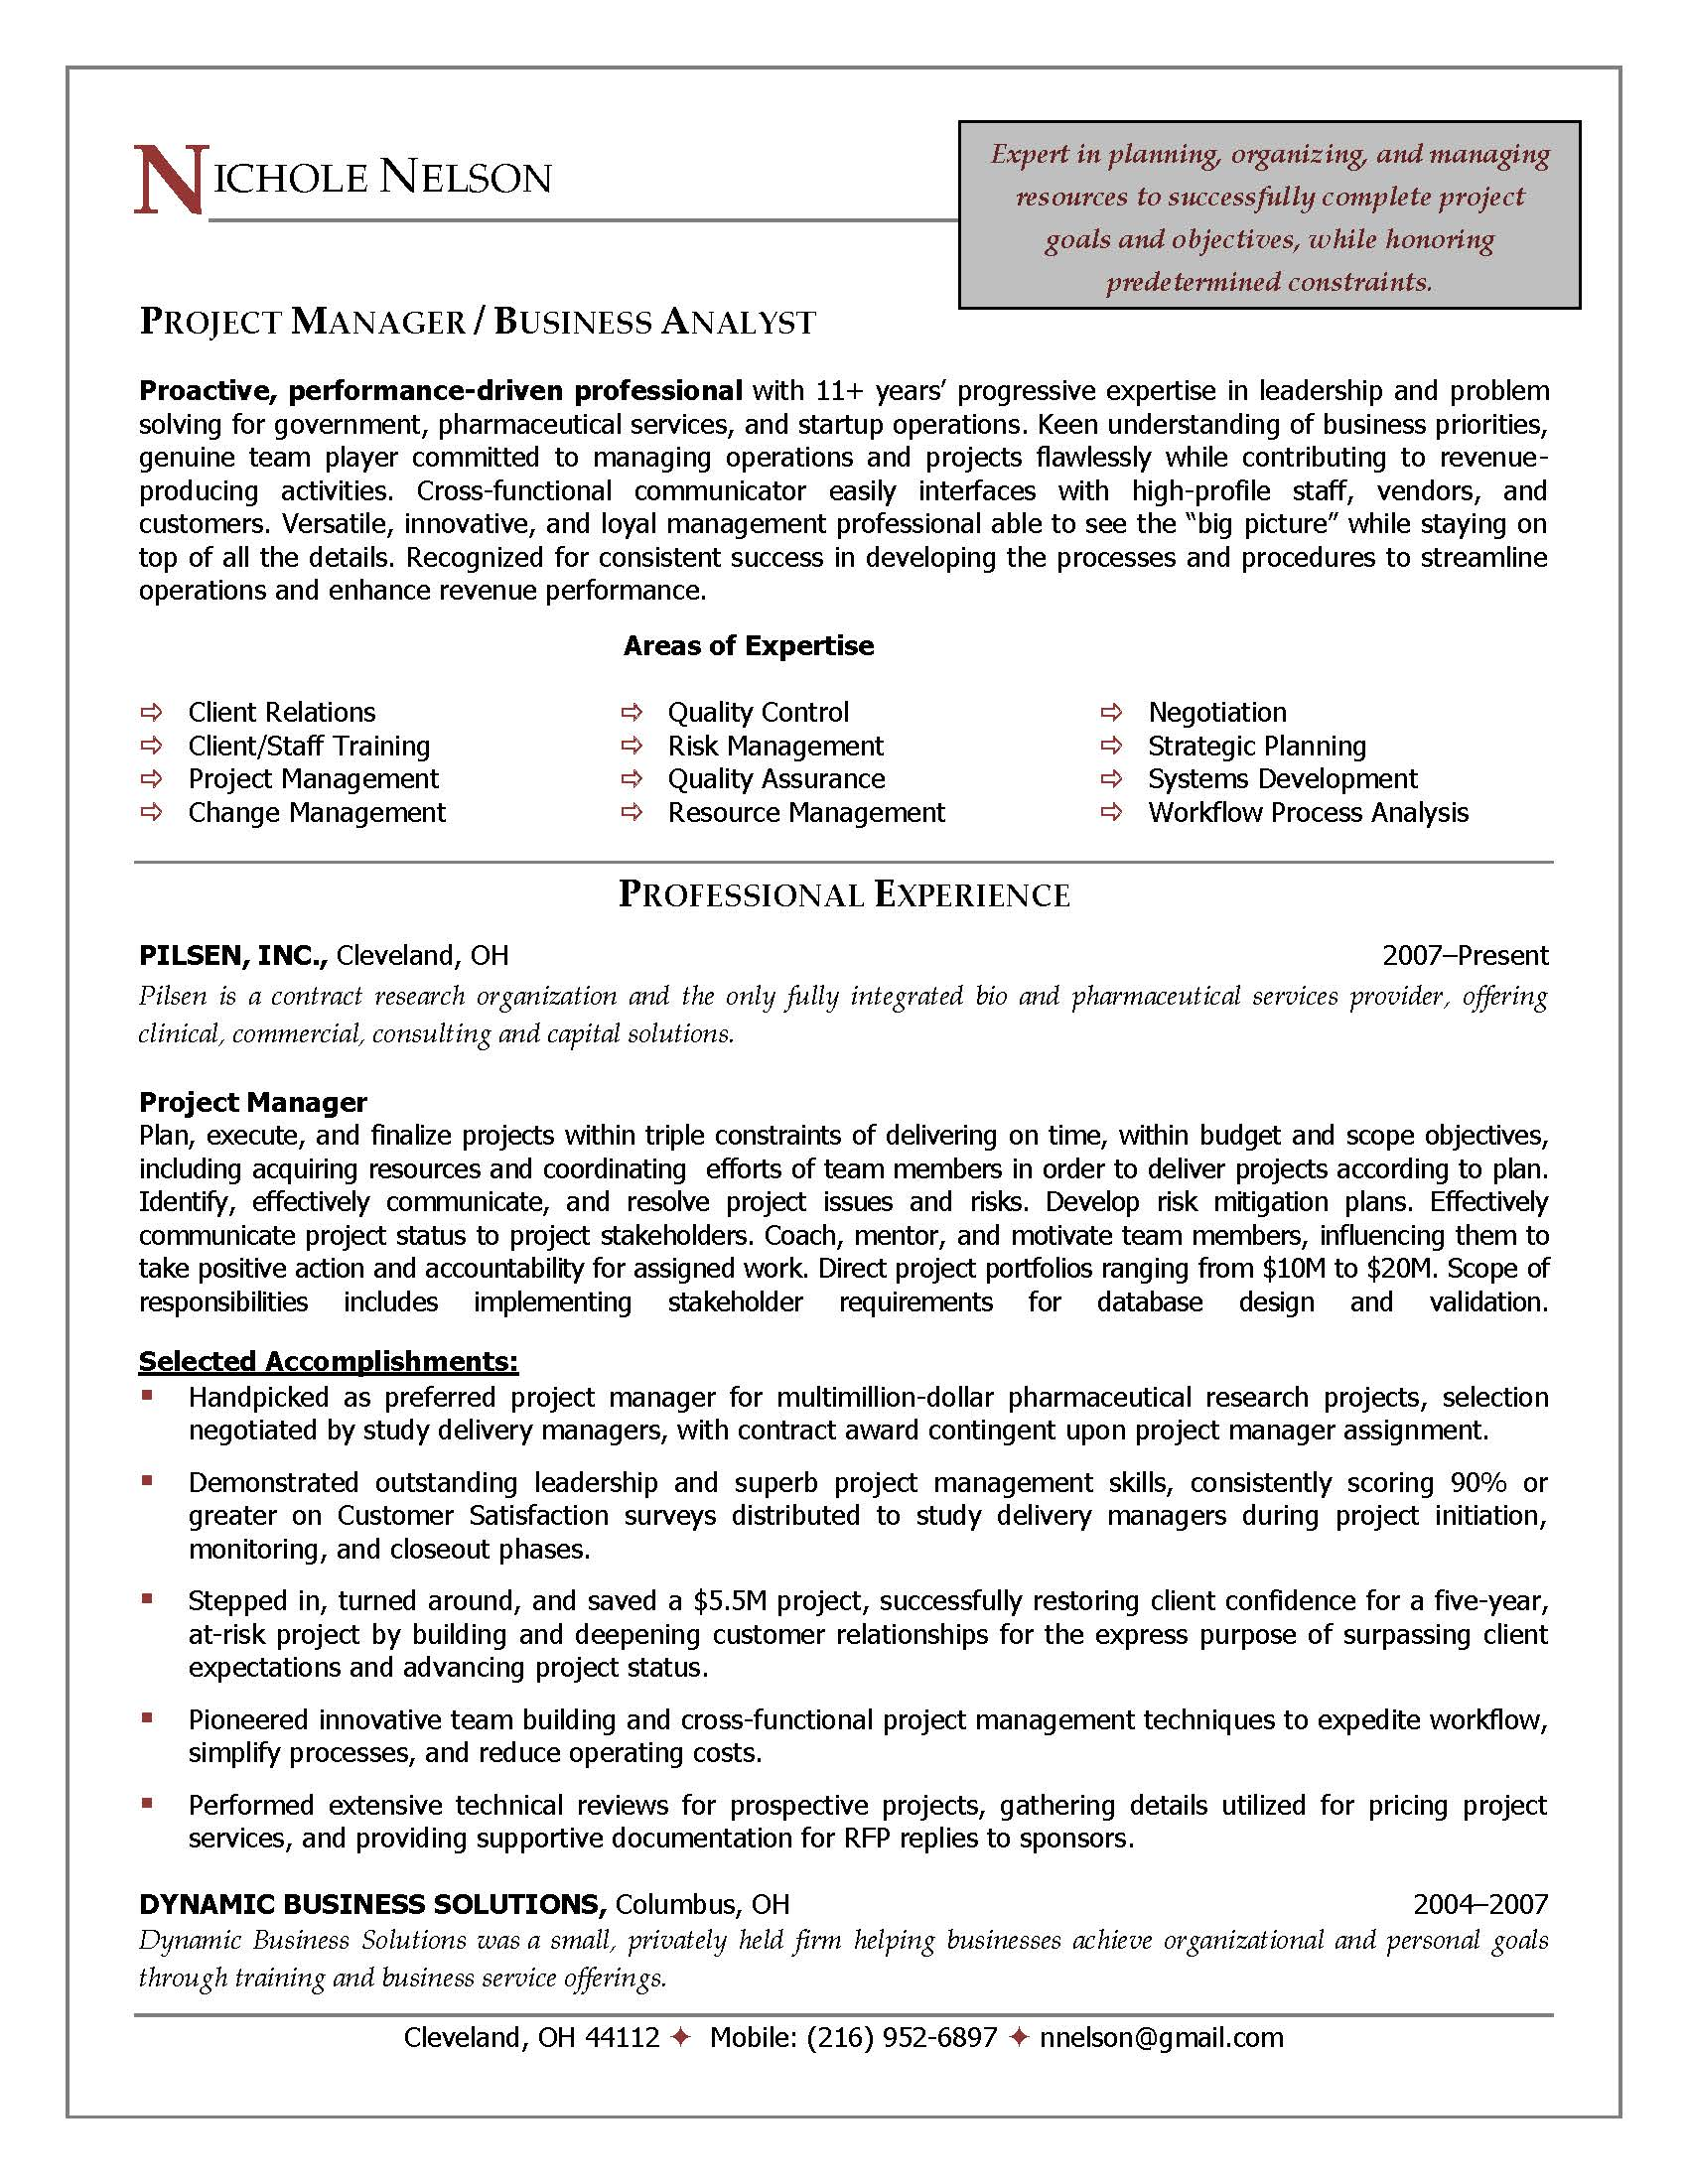 resume How To Write A Project Manager Resume resume samples program finance manager fpa devops sample project provided by elite writing services